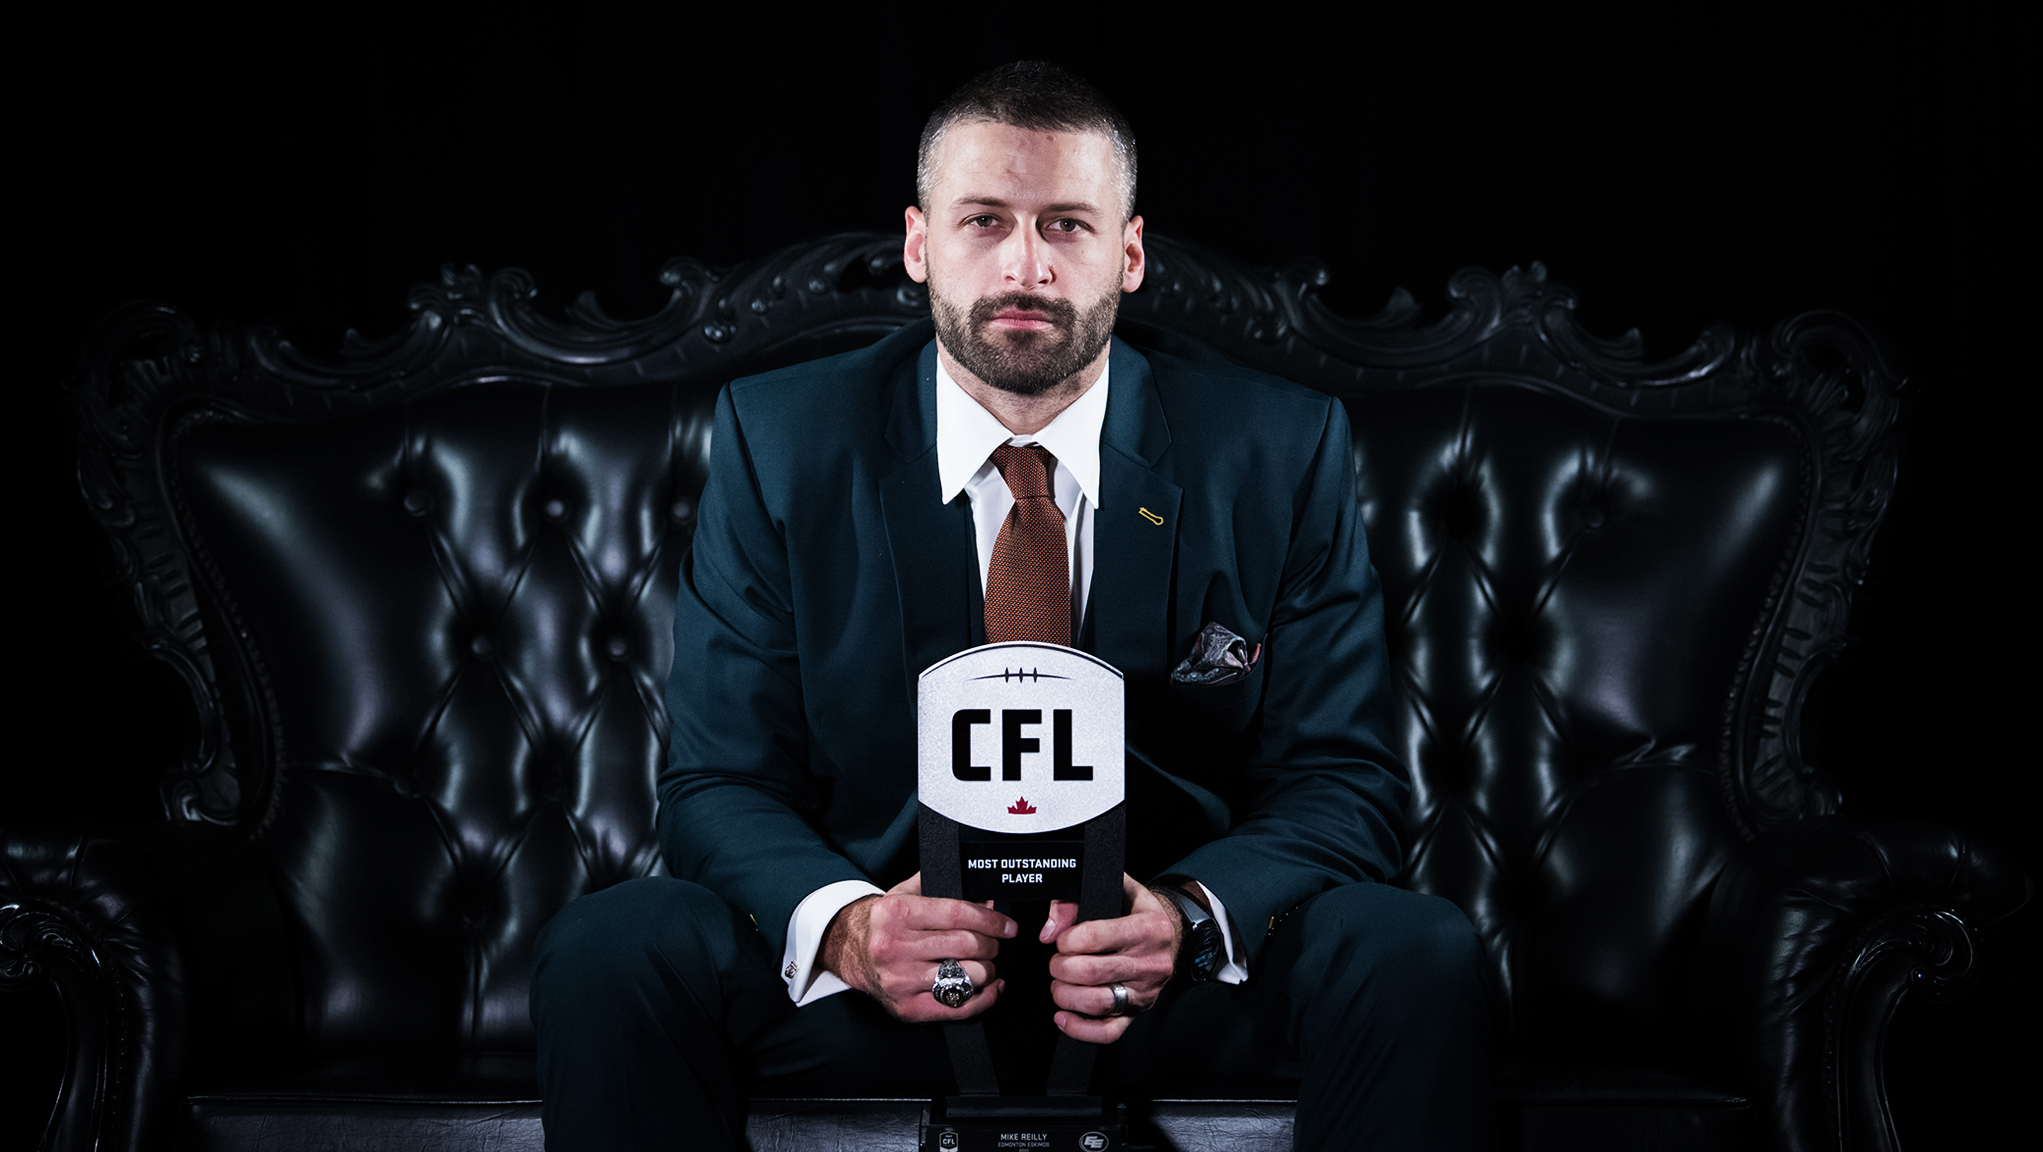 CFL silverware season springs few surprises